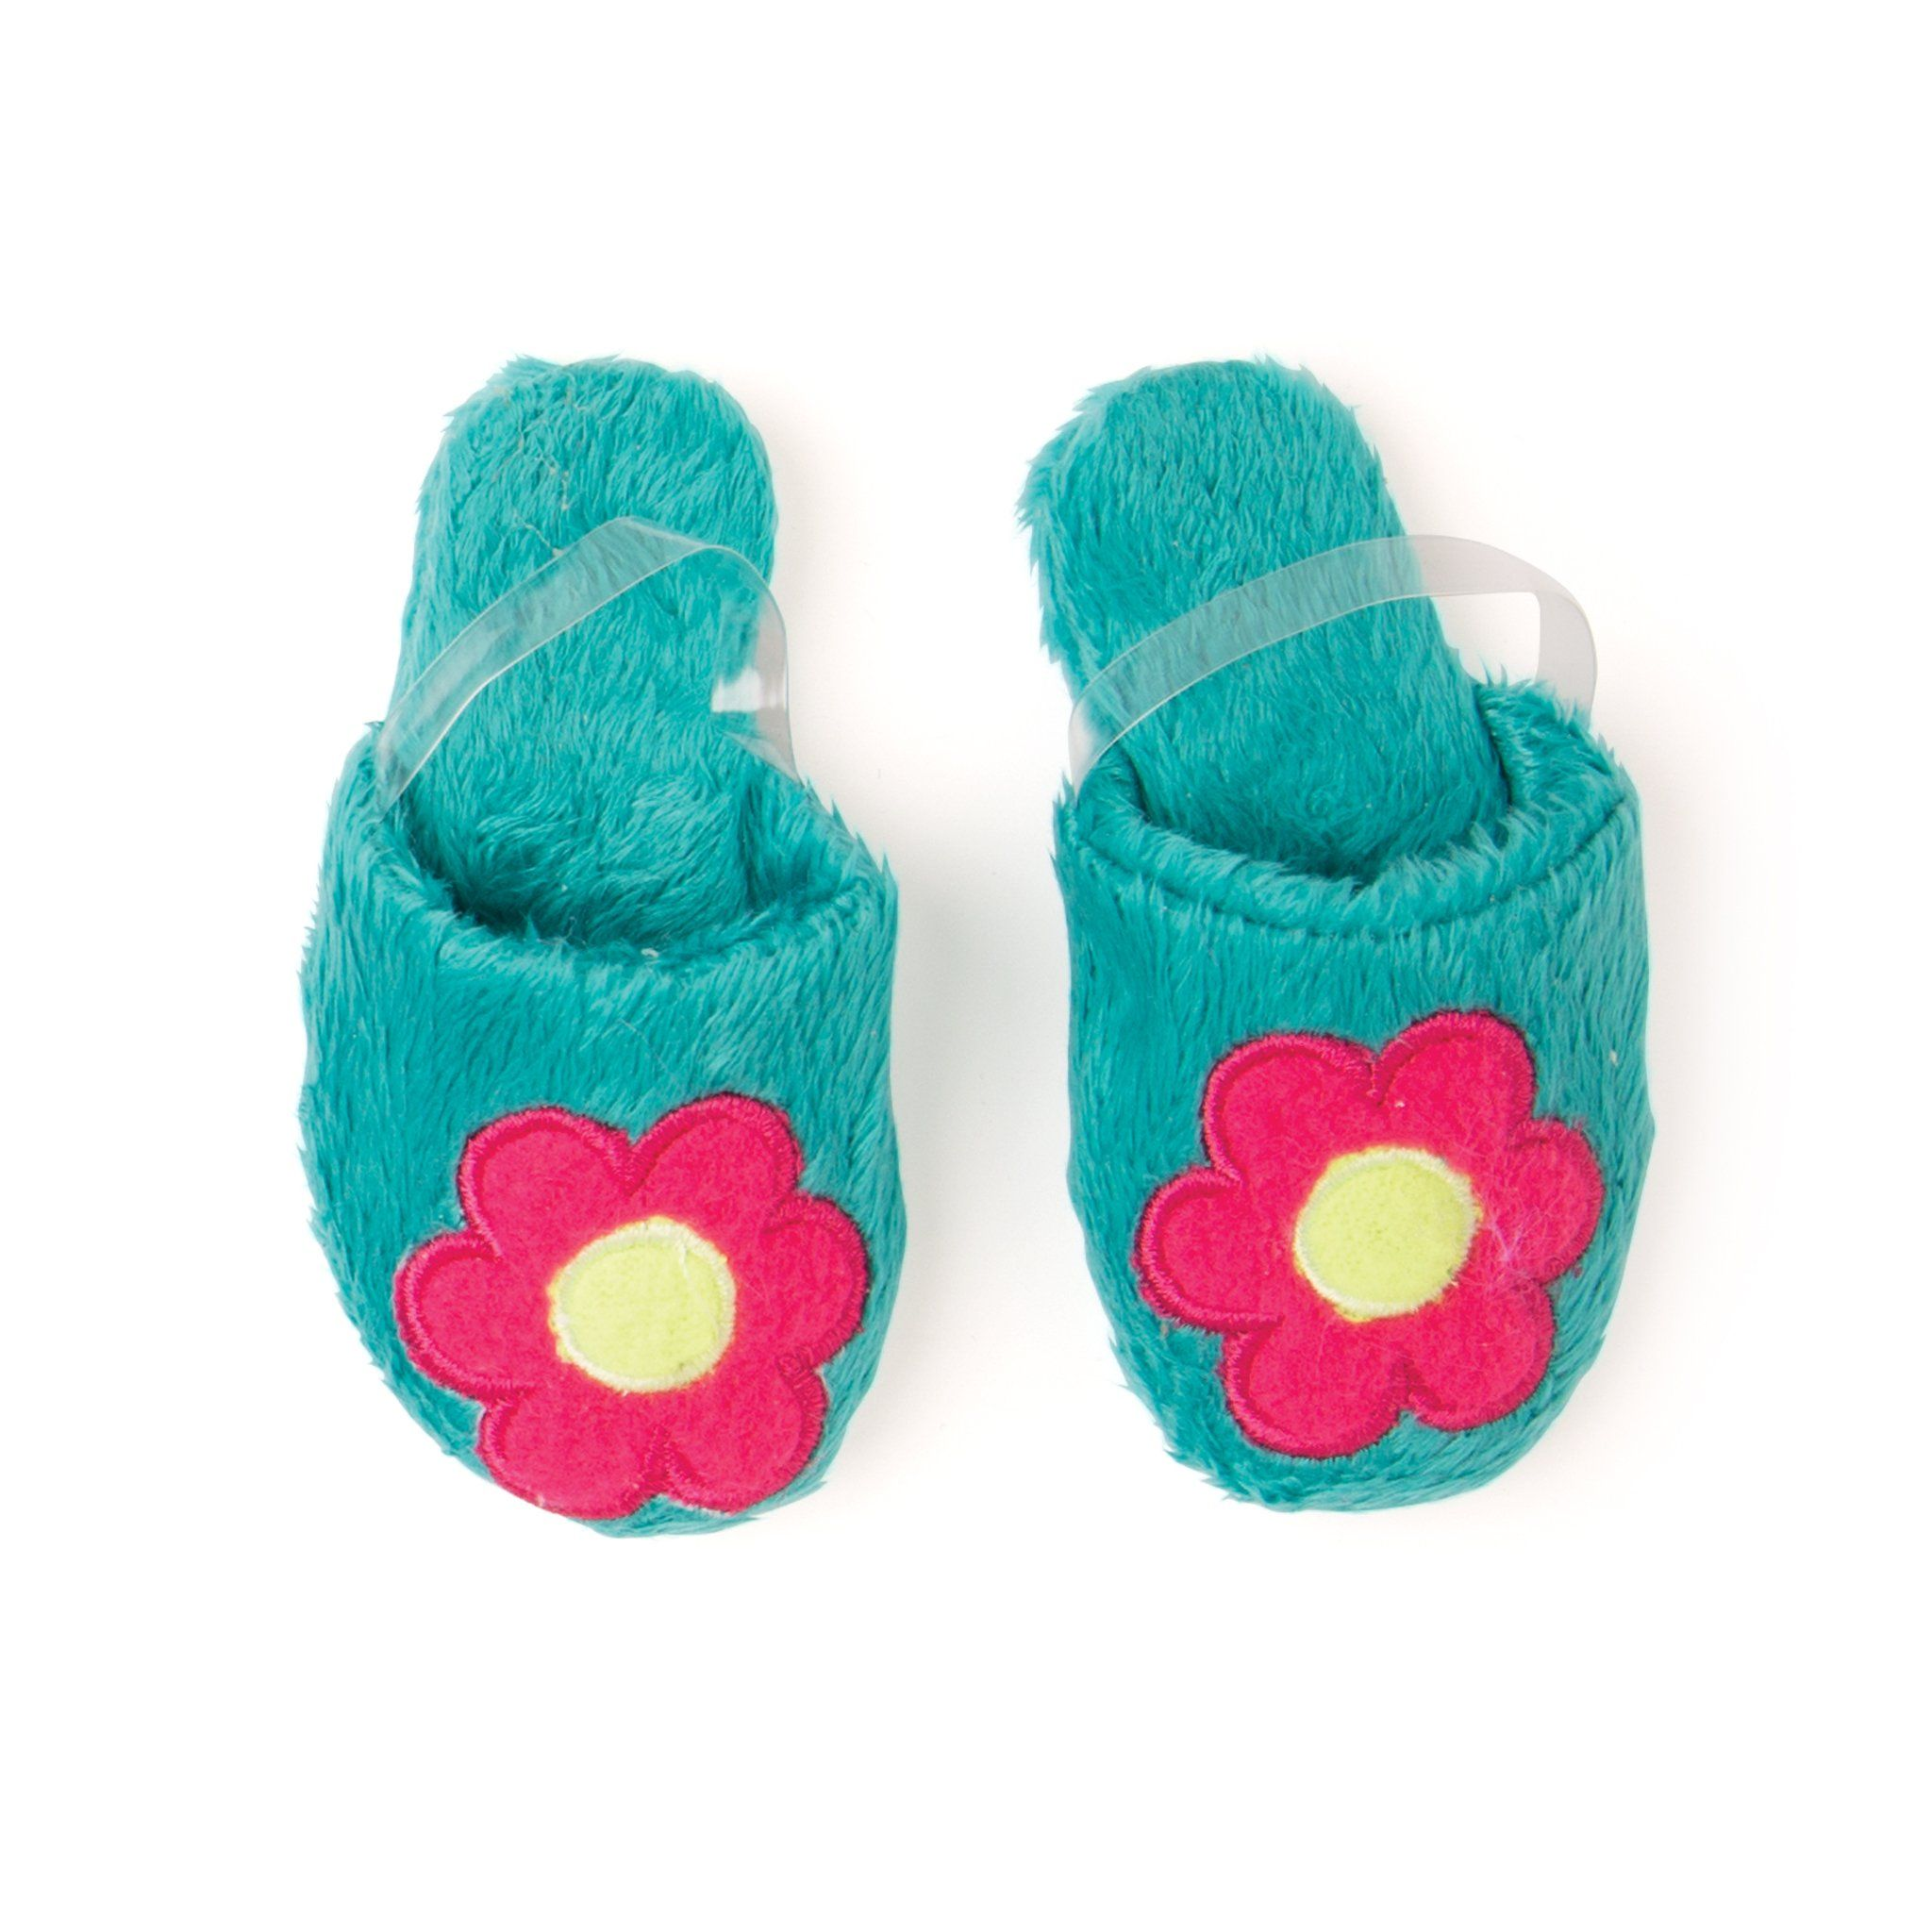 Fuzzy teal slippers for 18 inch doll.